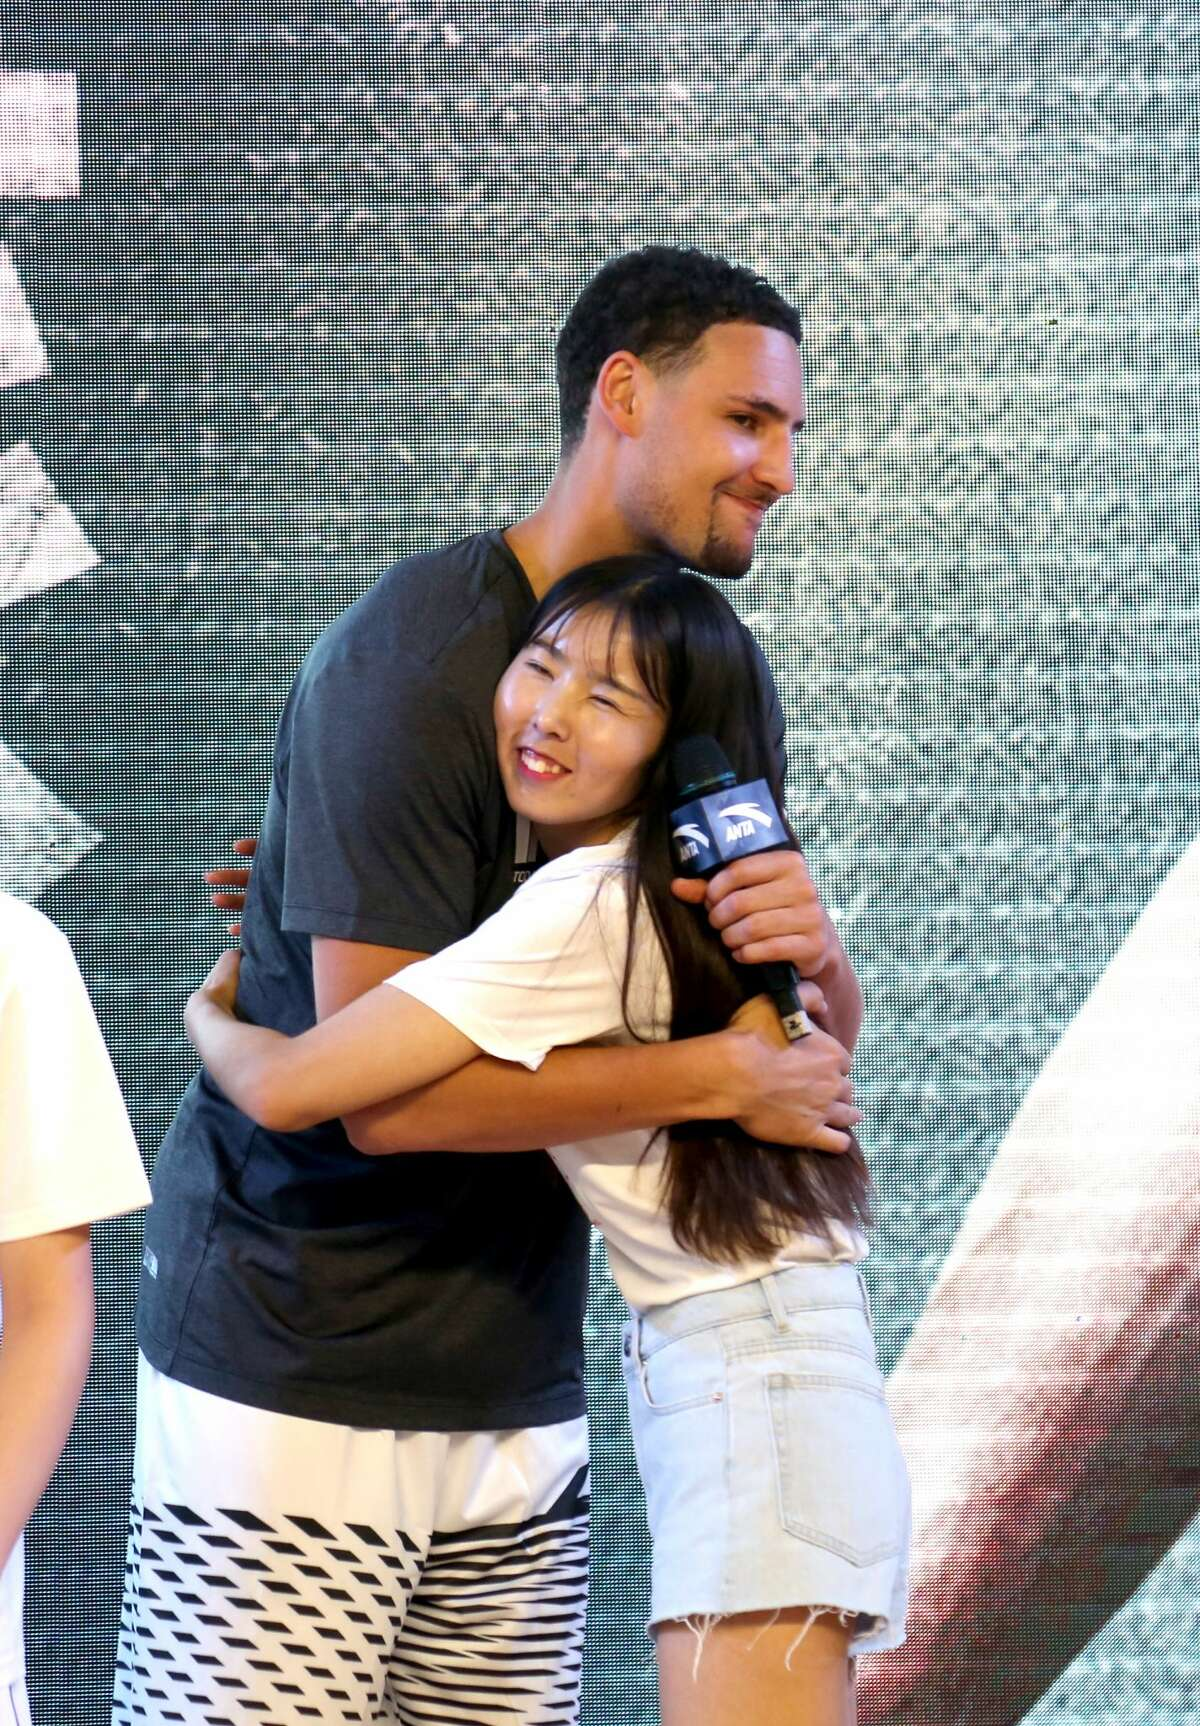 NBA player Klay Thompson of the Golden State Warriors meets fans at Happy Family Mall on June 26, 2017 in Shenyang, China.